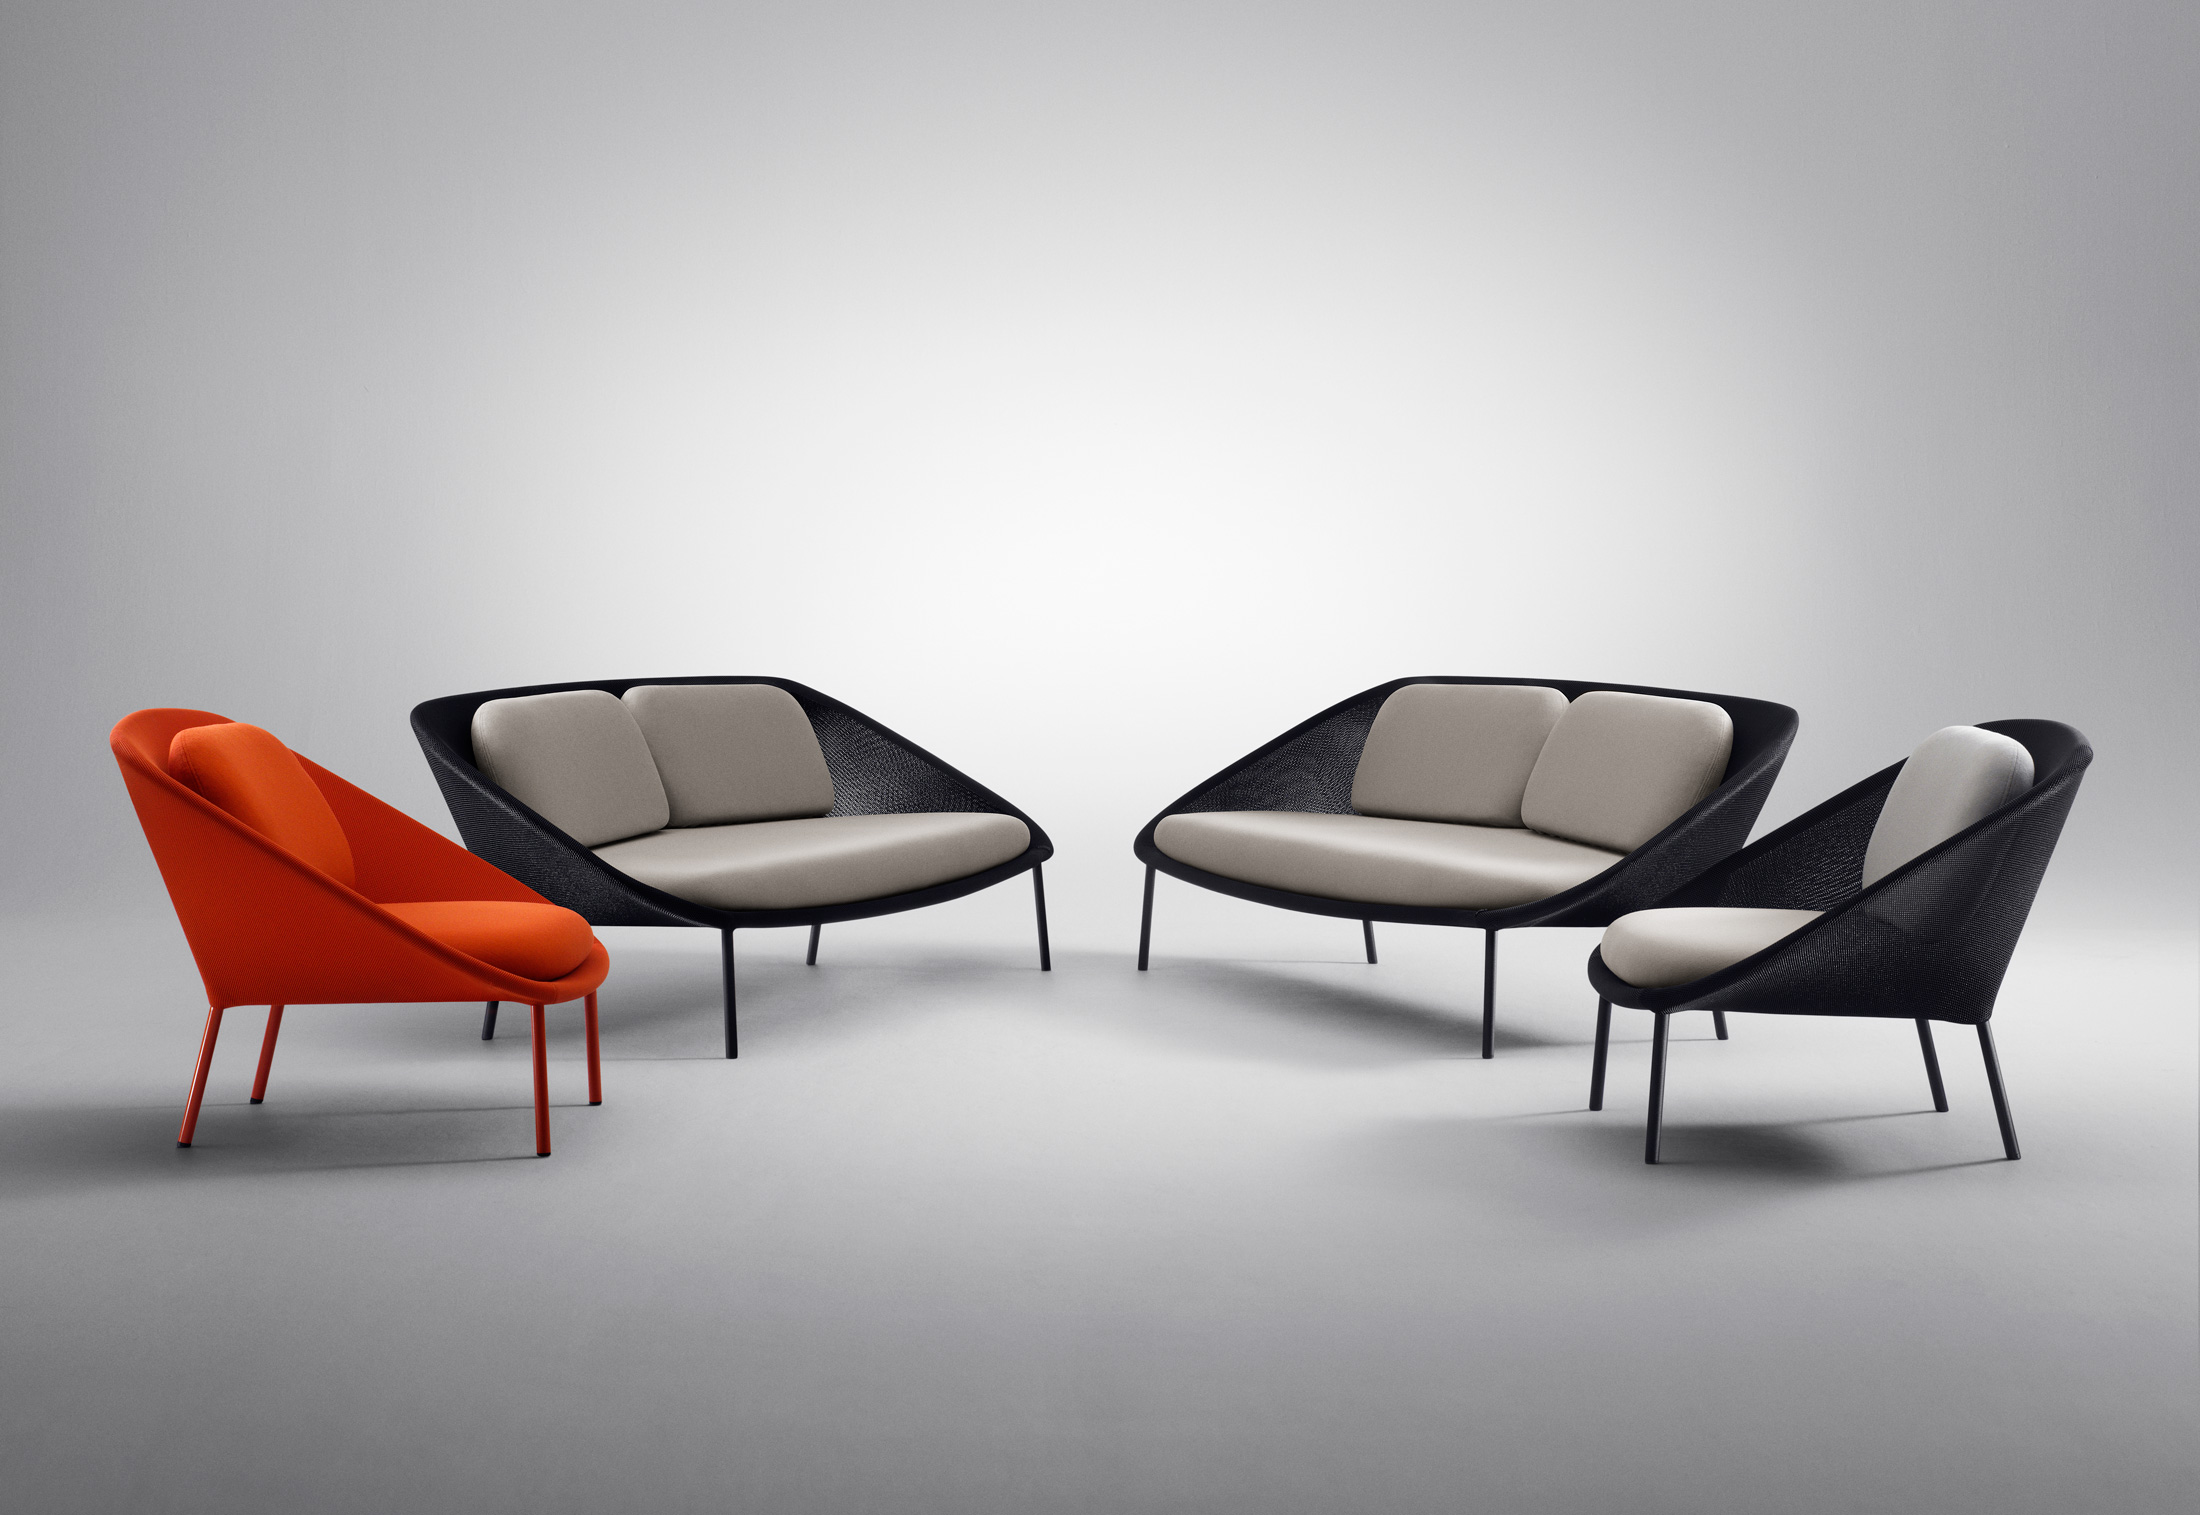 Netframe Sofa by OFFECCT   STYLEPARK